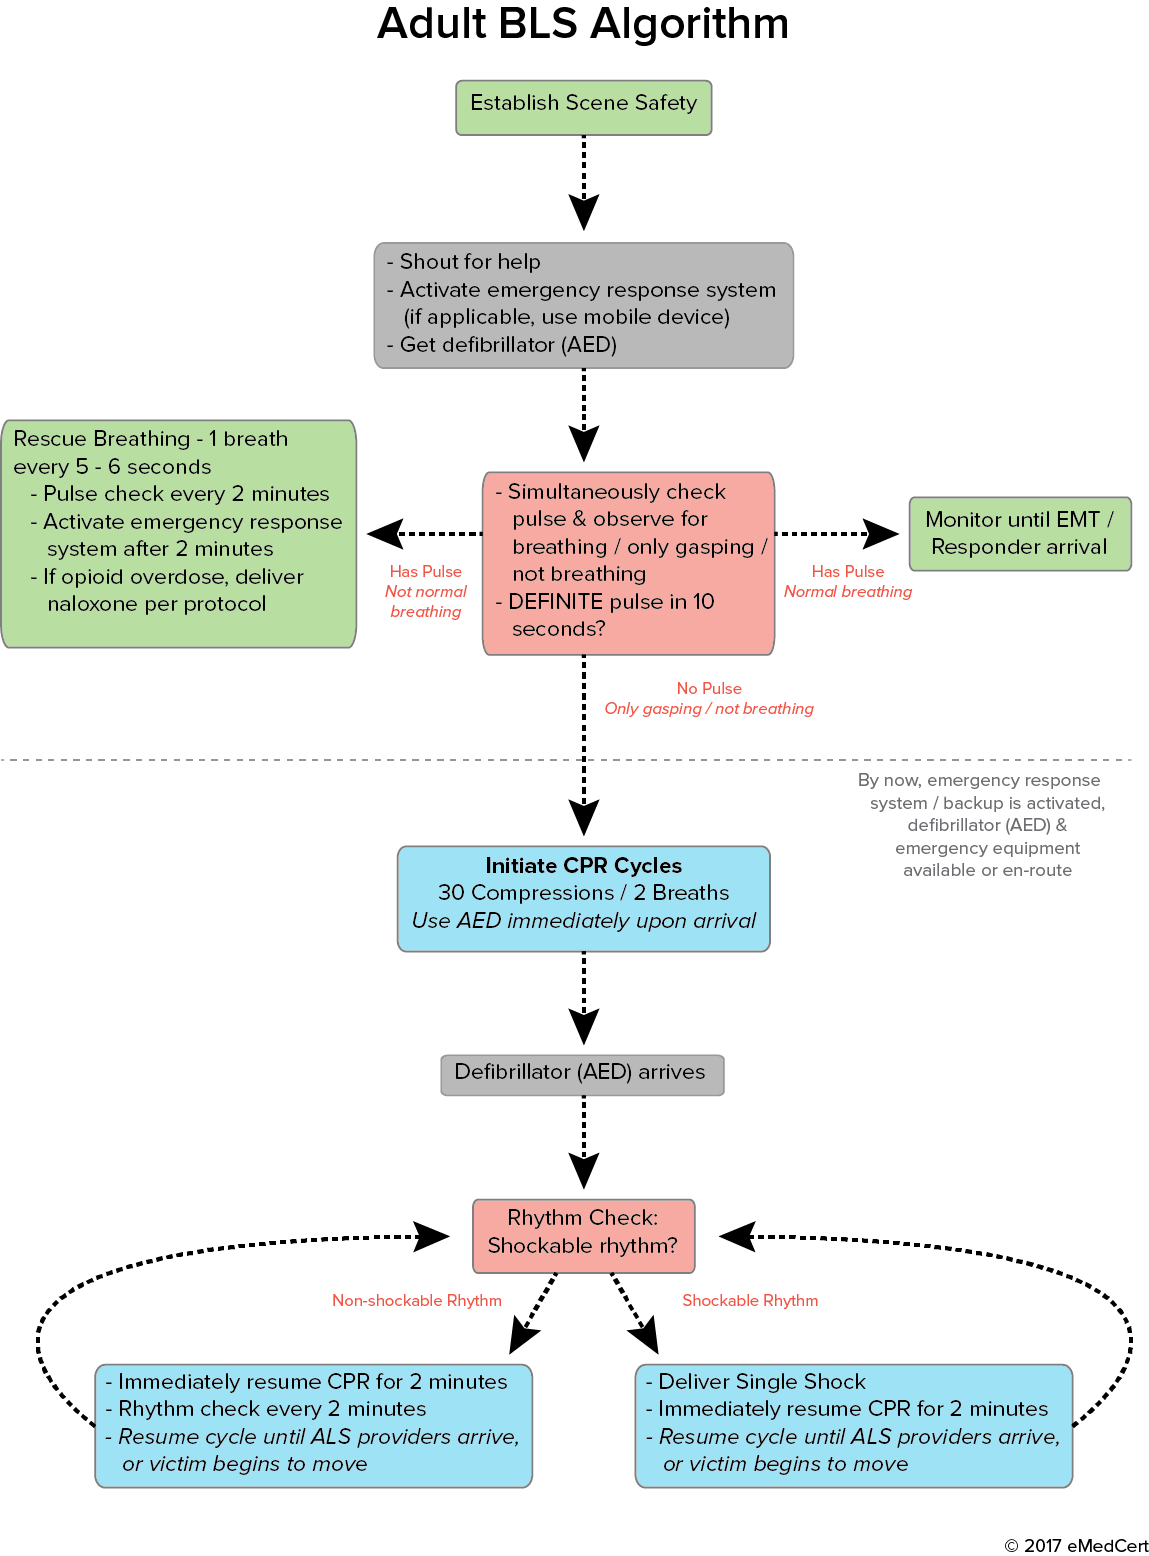 Acls algorithms adult bls algorithm emedcert bshong pinterest heres every acls algorithm you need to be familiar with in order to pass your exam xflitez Images